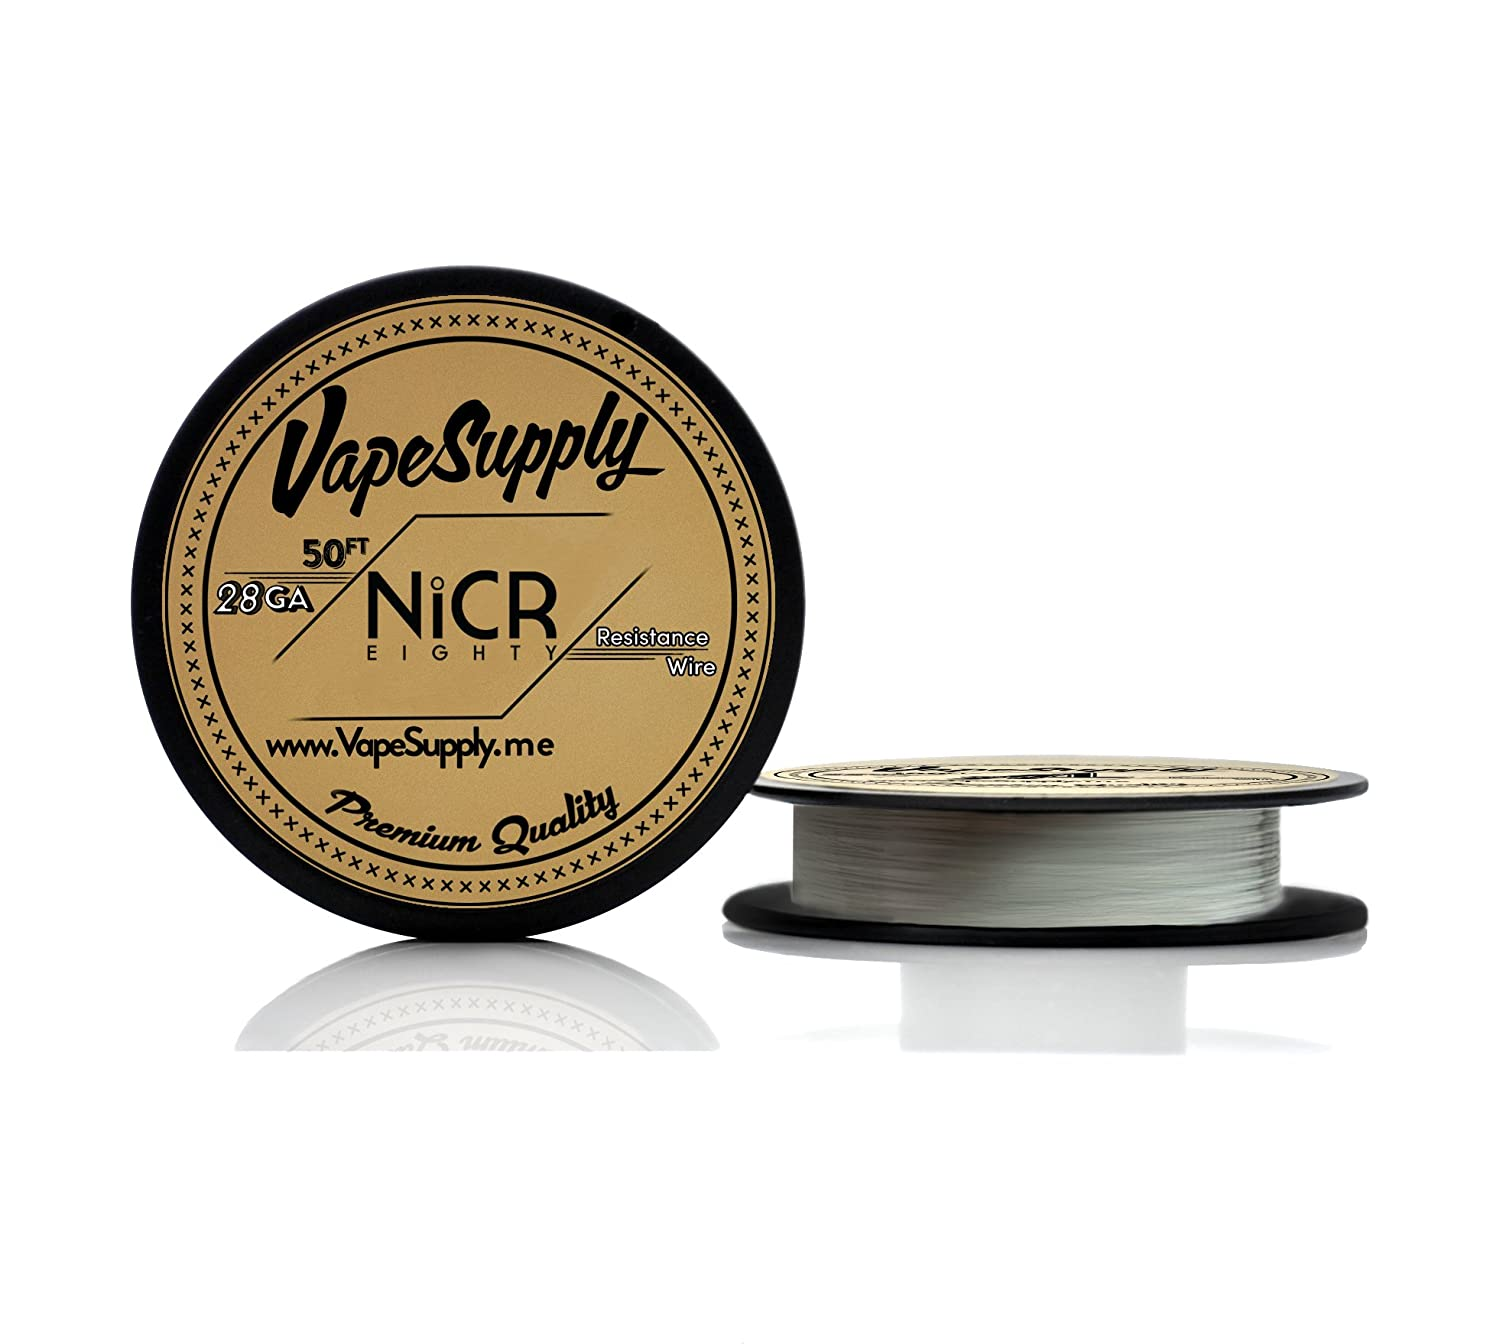 VapeSupply 28G-NCR-50FT VapeSupply 28AWG NiChrome Series 80 Resistance Wire - 50FT Spool